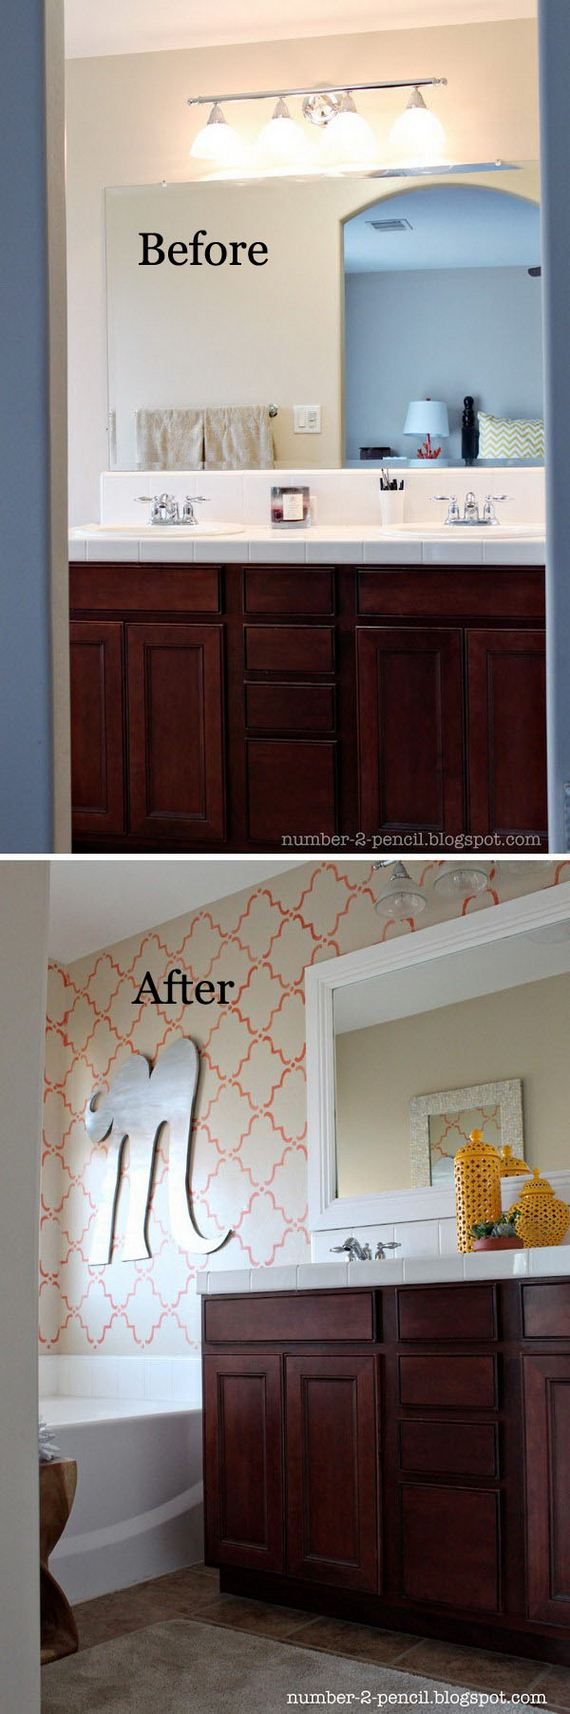 18-awesome-bathroom-makeovers